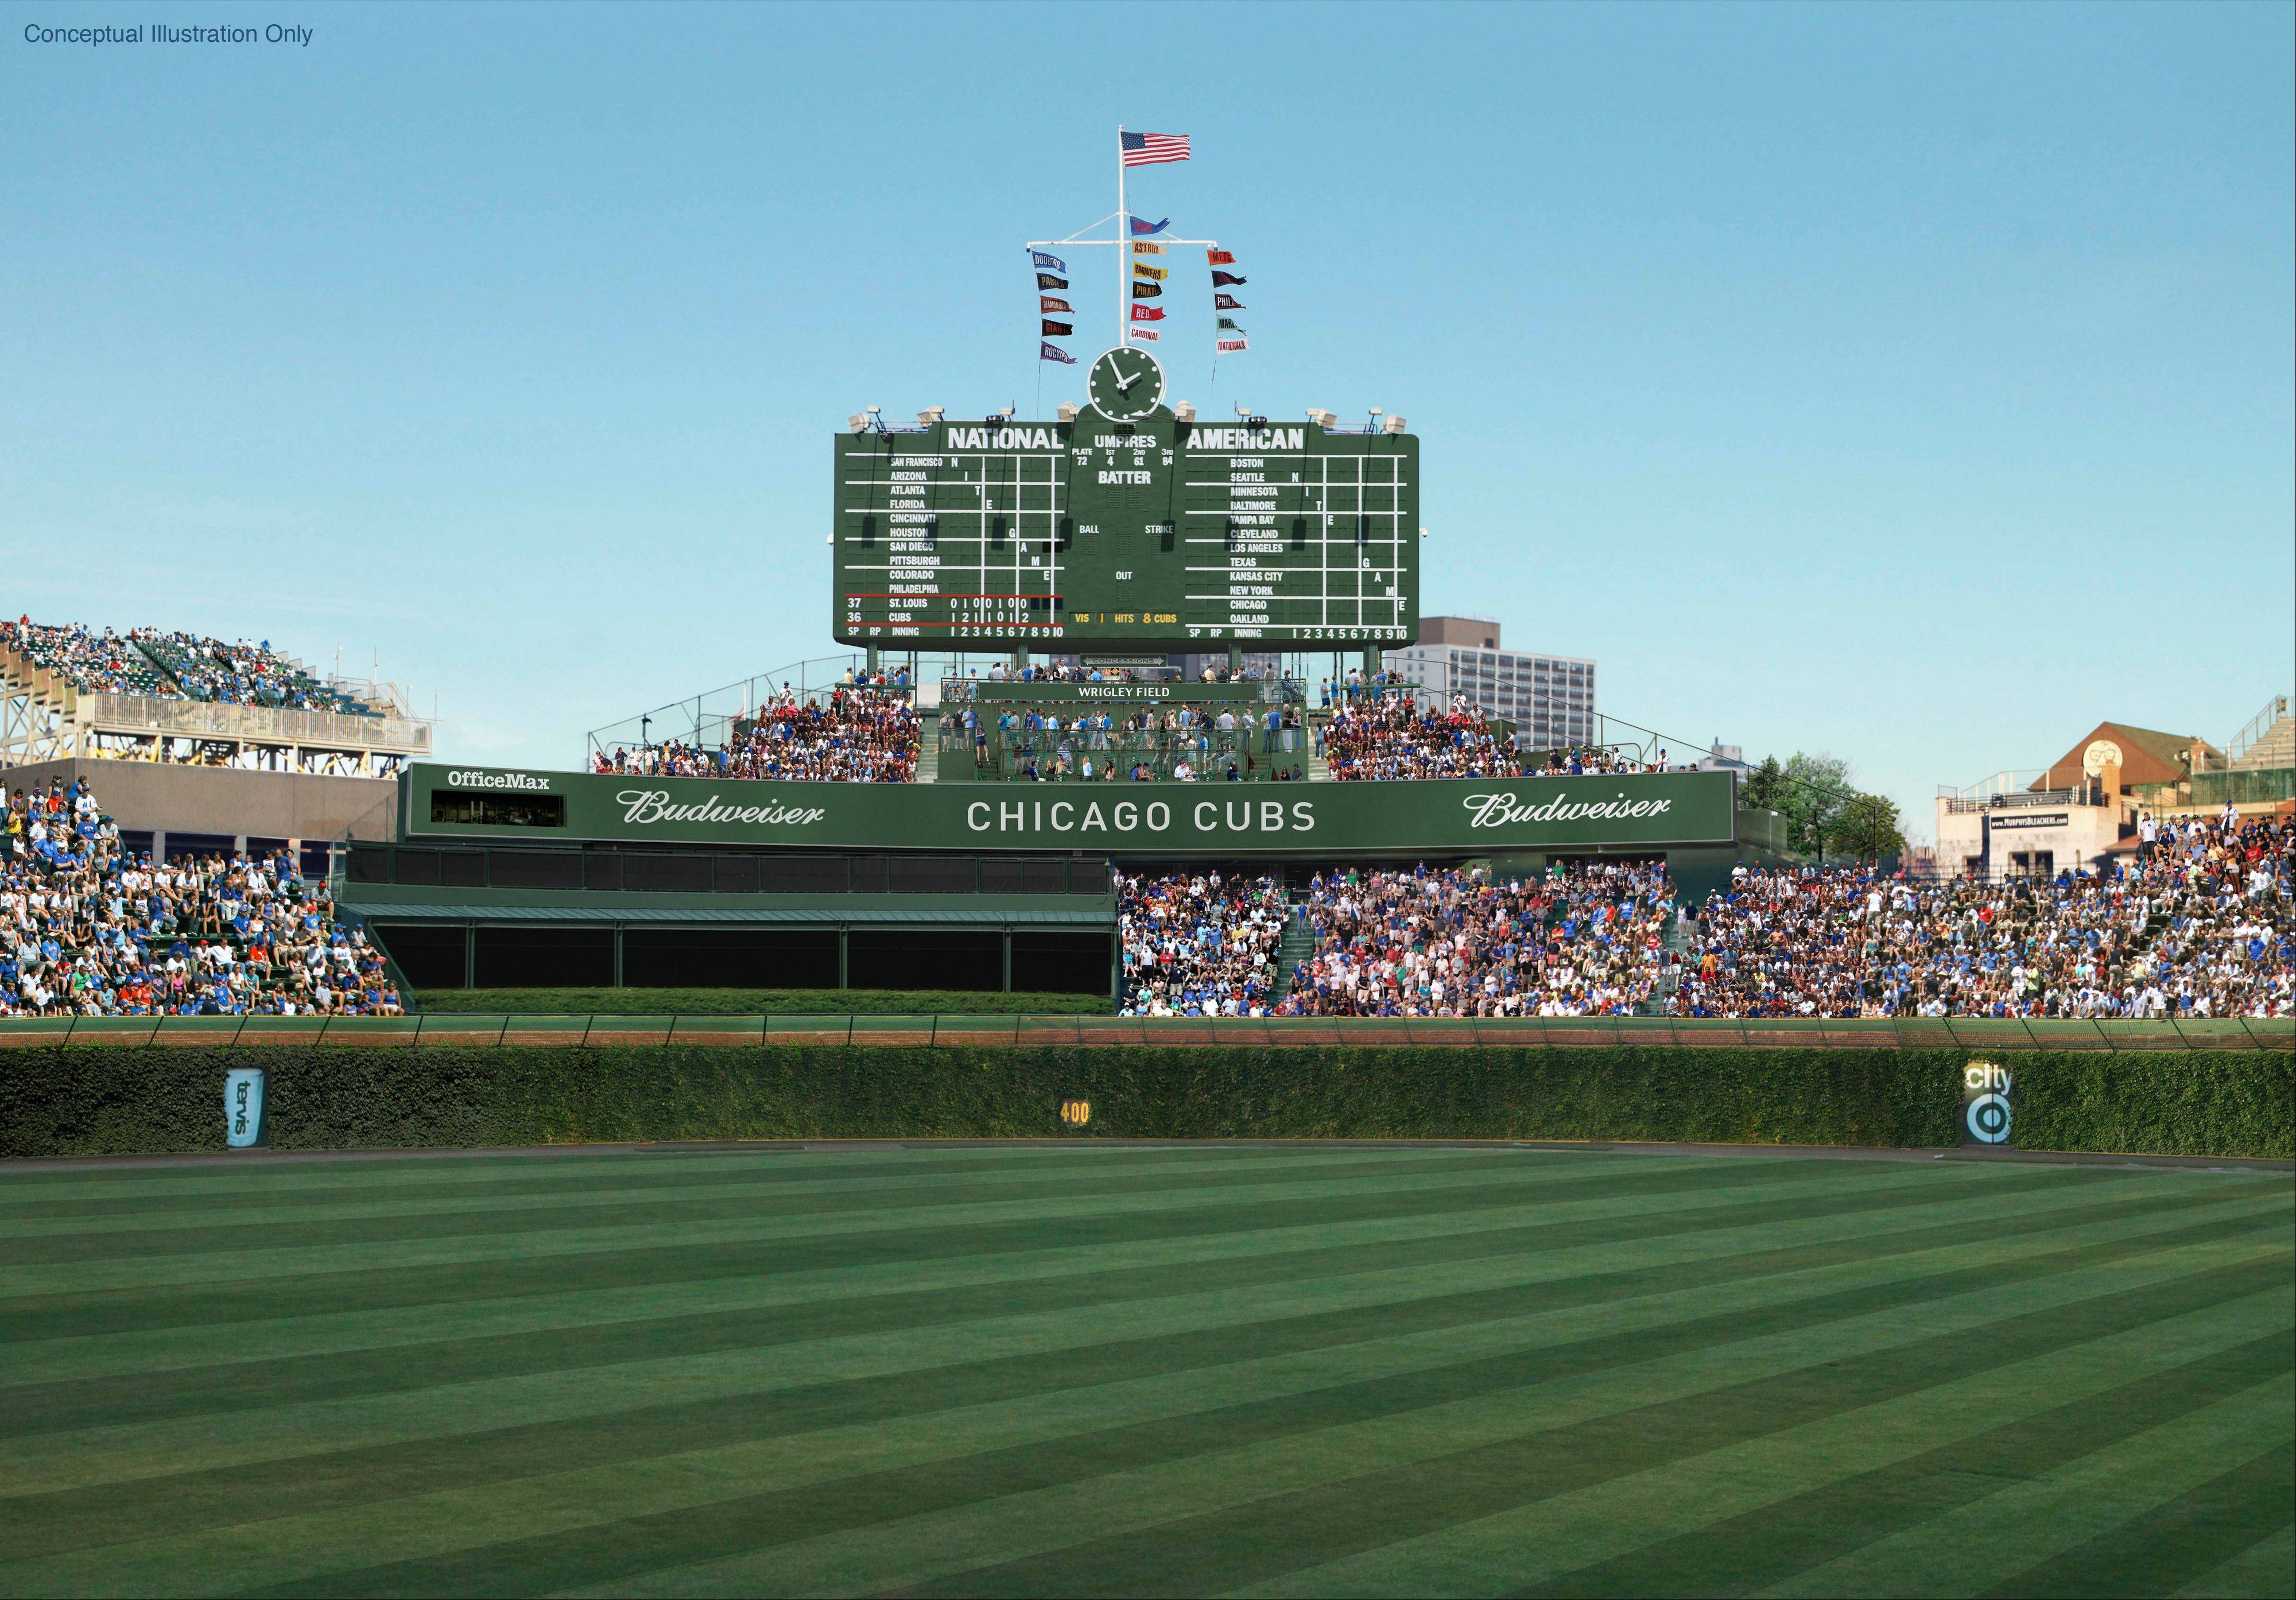 This is a view of the proposed center-field area at Wrigley Field.